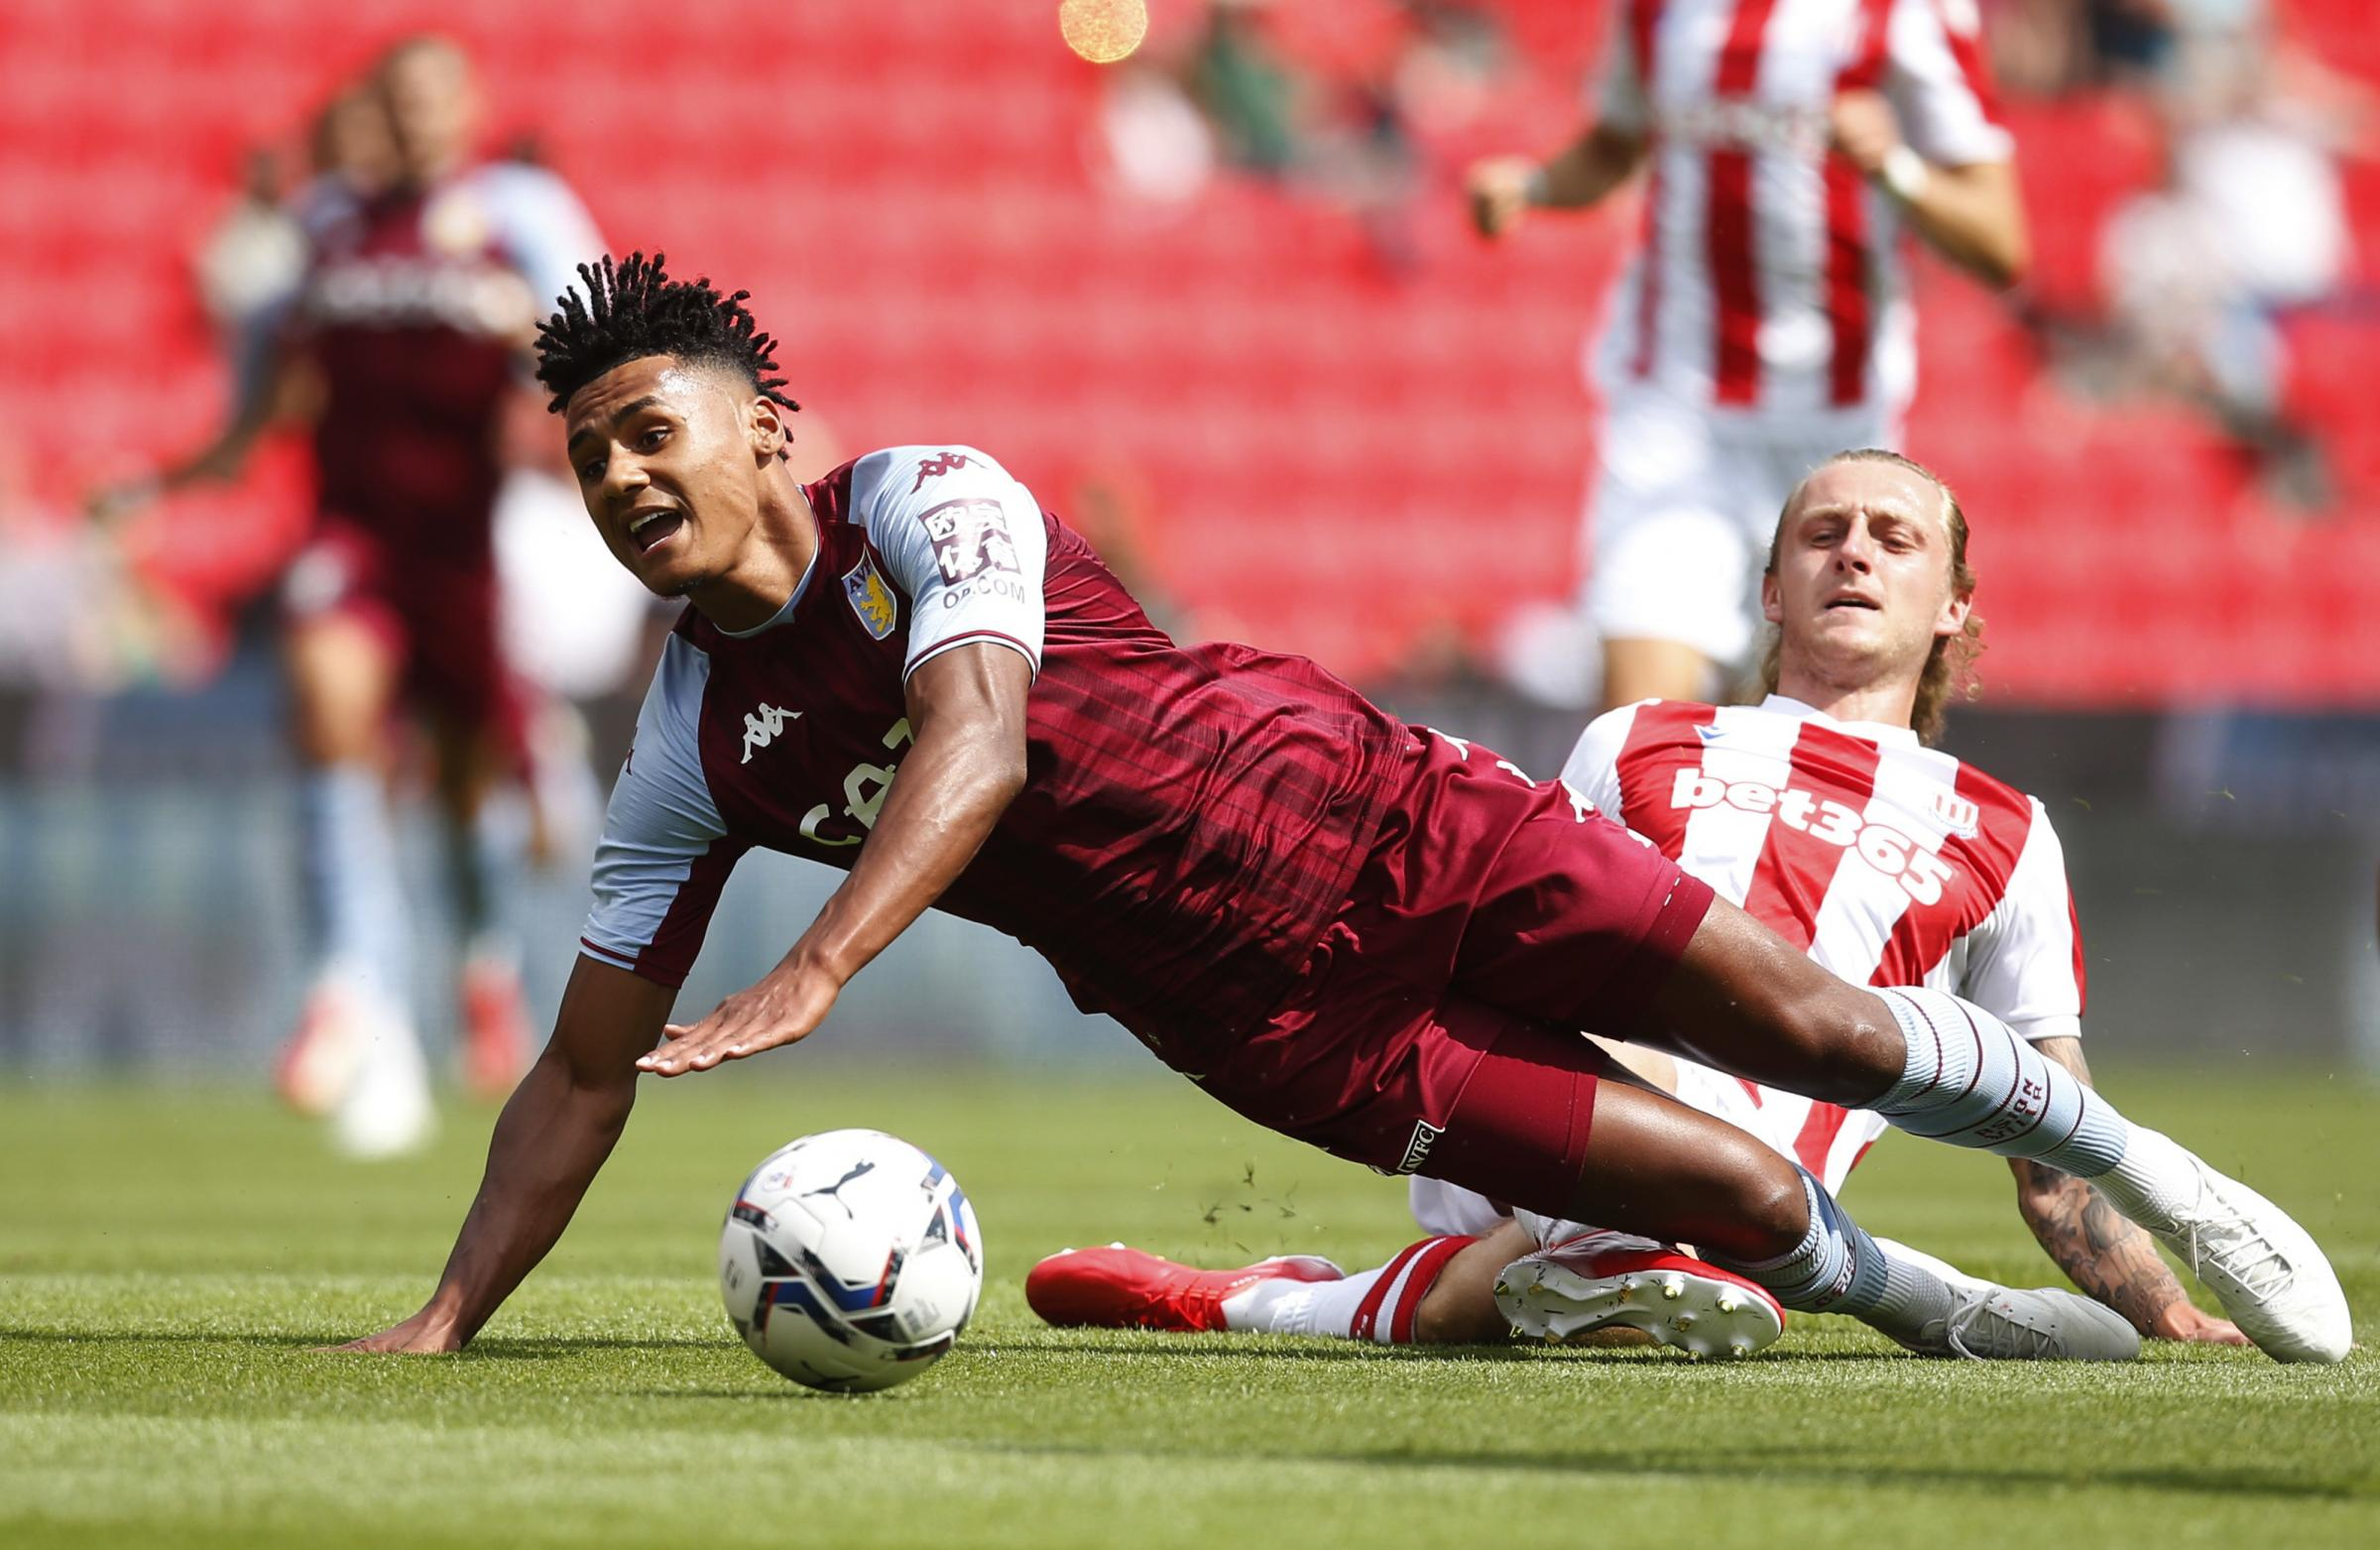 Aston Villa could have key players absent for Watford match